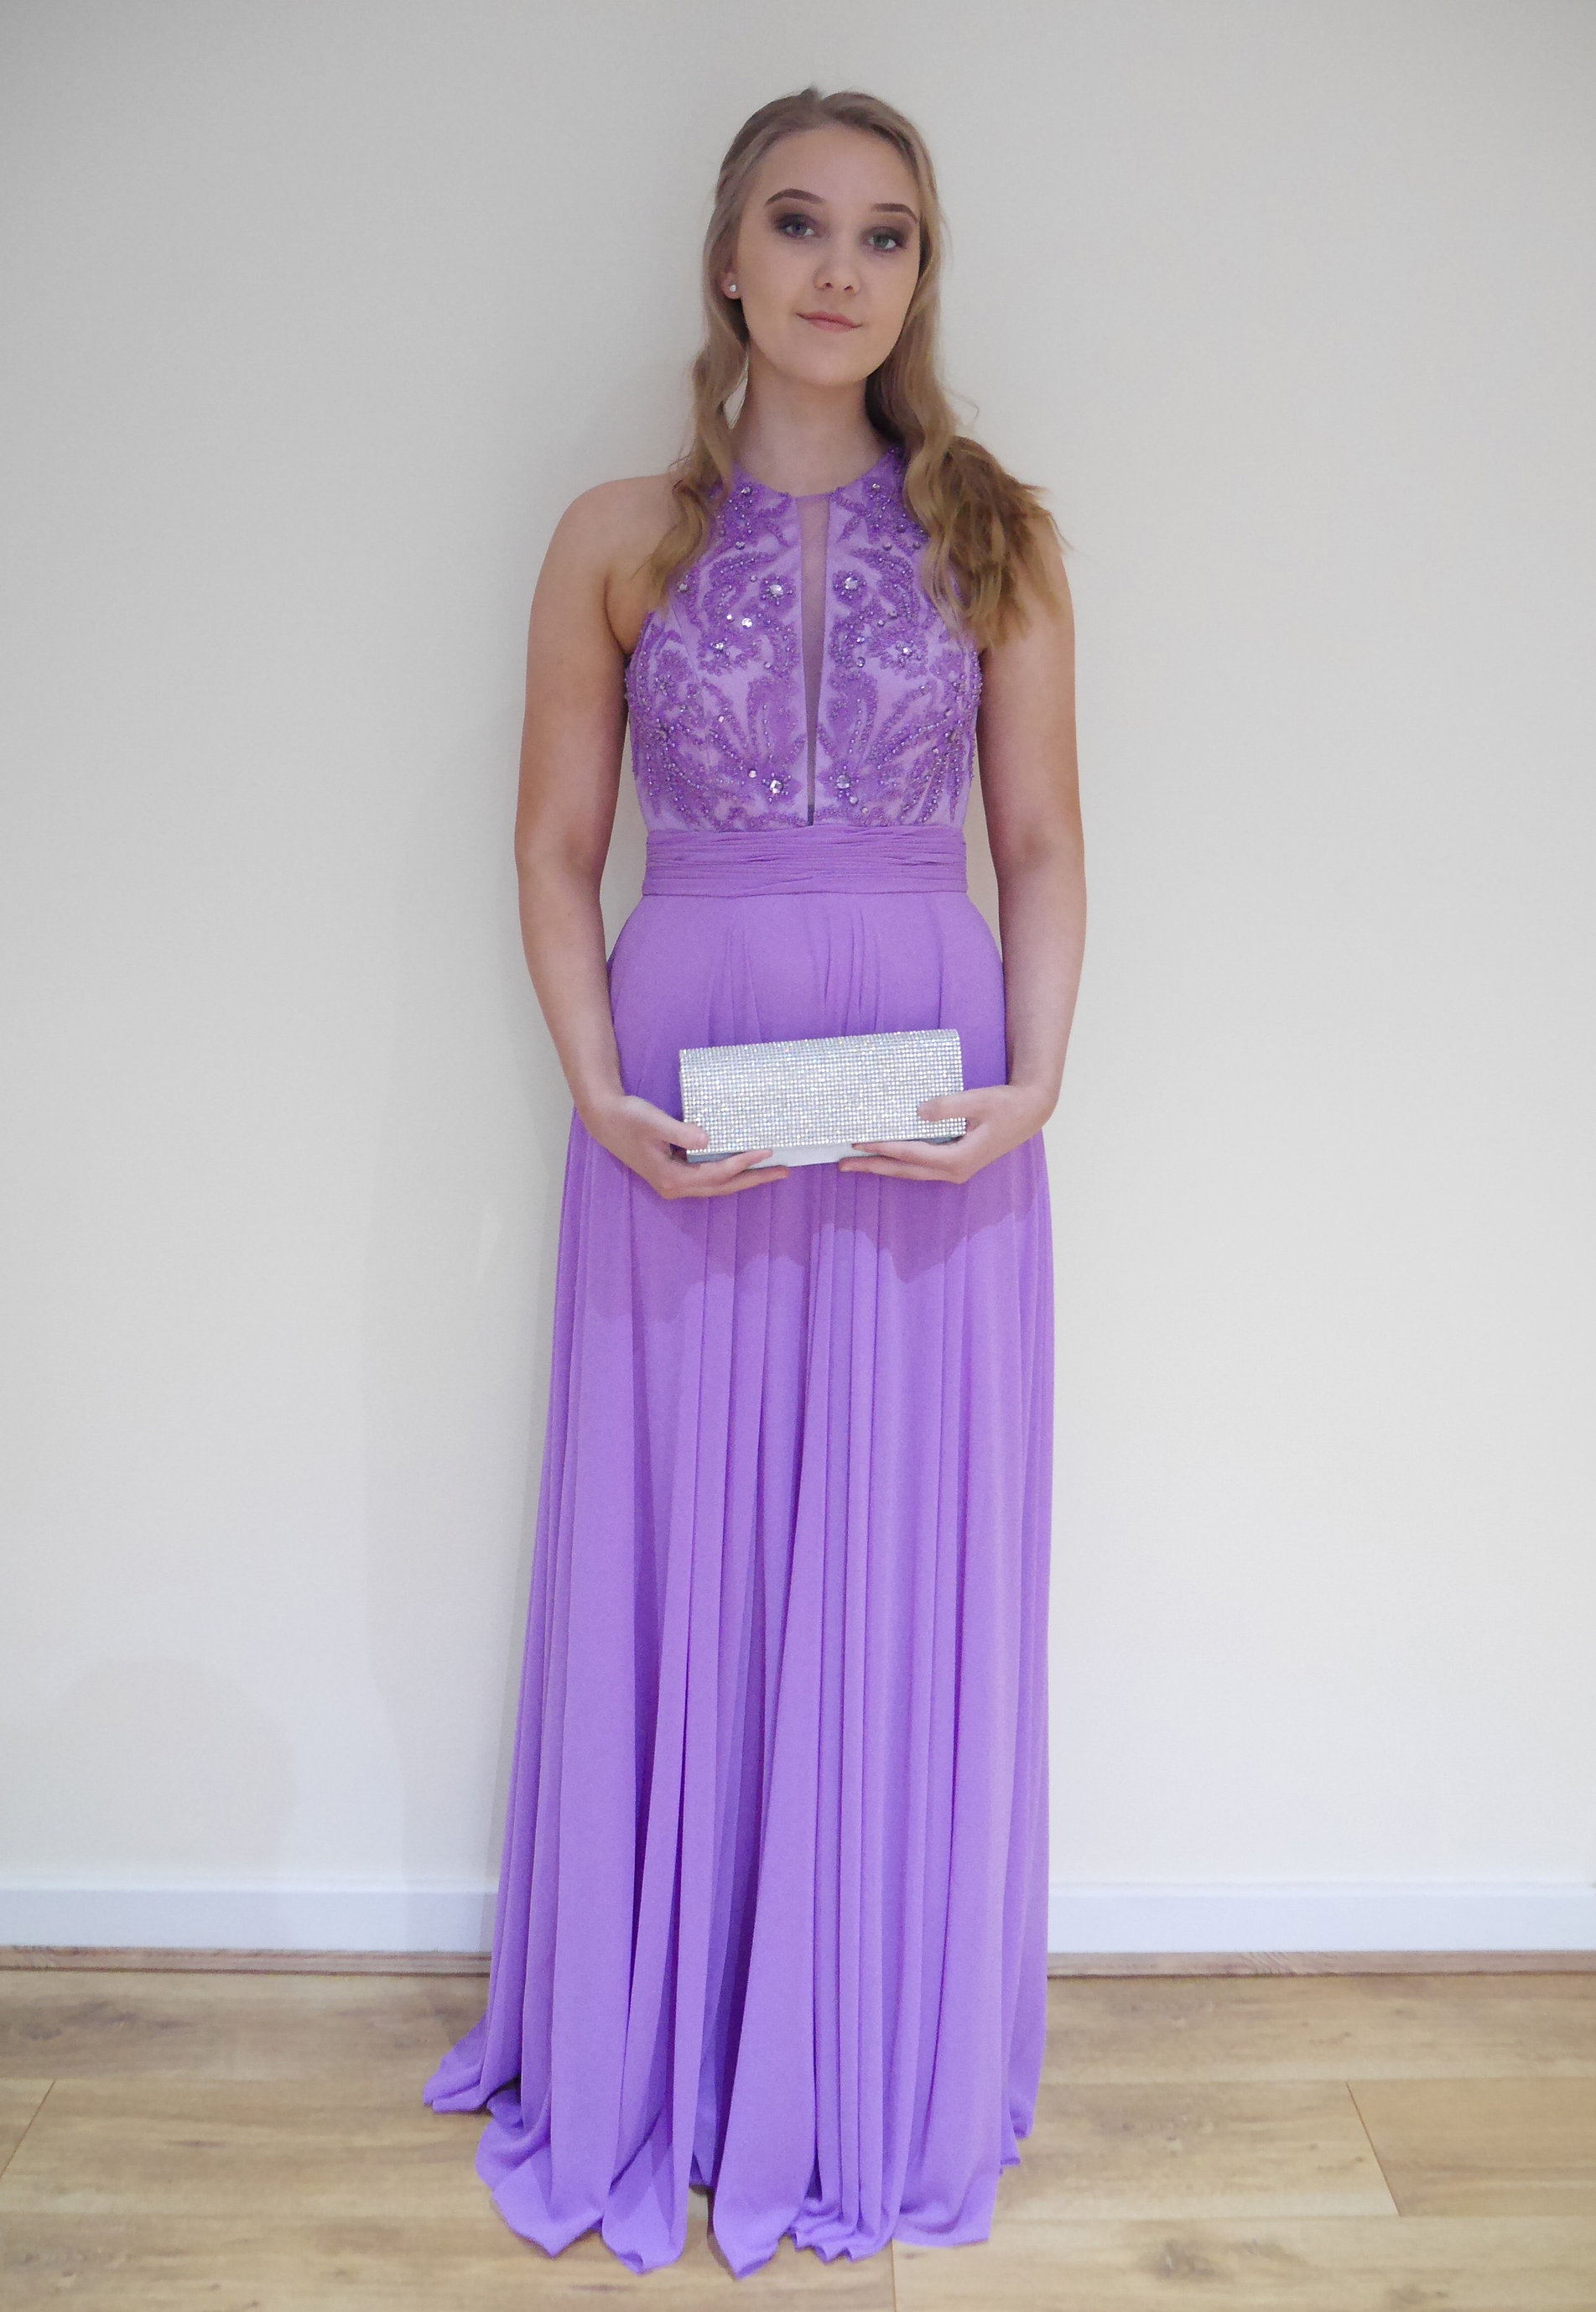 Designer Prom Dresses Doncaster Designer Prom dresses in Doncaster, South Yorkshire. We like to think we have a Prom Dress style for every Prom Girl in Doncaster and have a one prom dress style per school policy so no two girls turns up in the same prom dress.